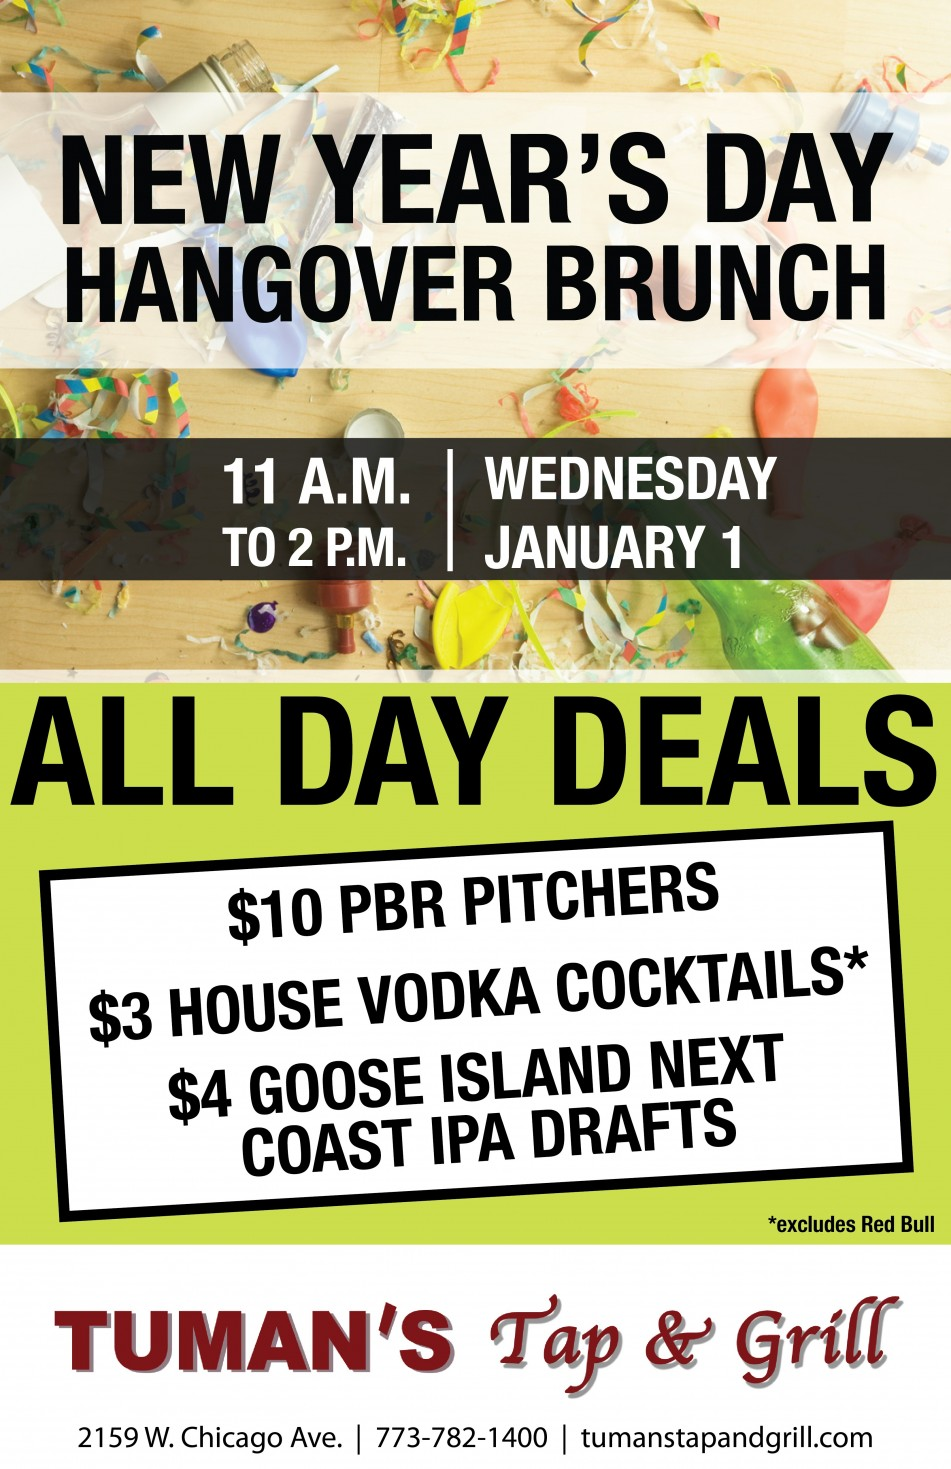 New Year's Day Hangover Brunch at Tuman's Tap & Grill